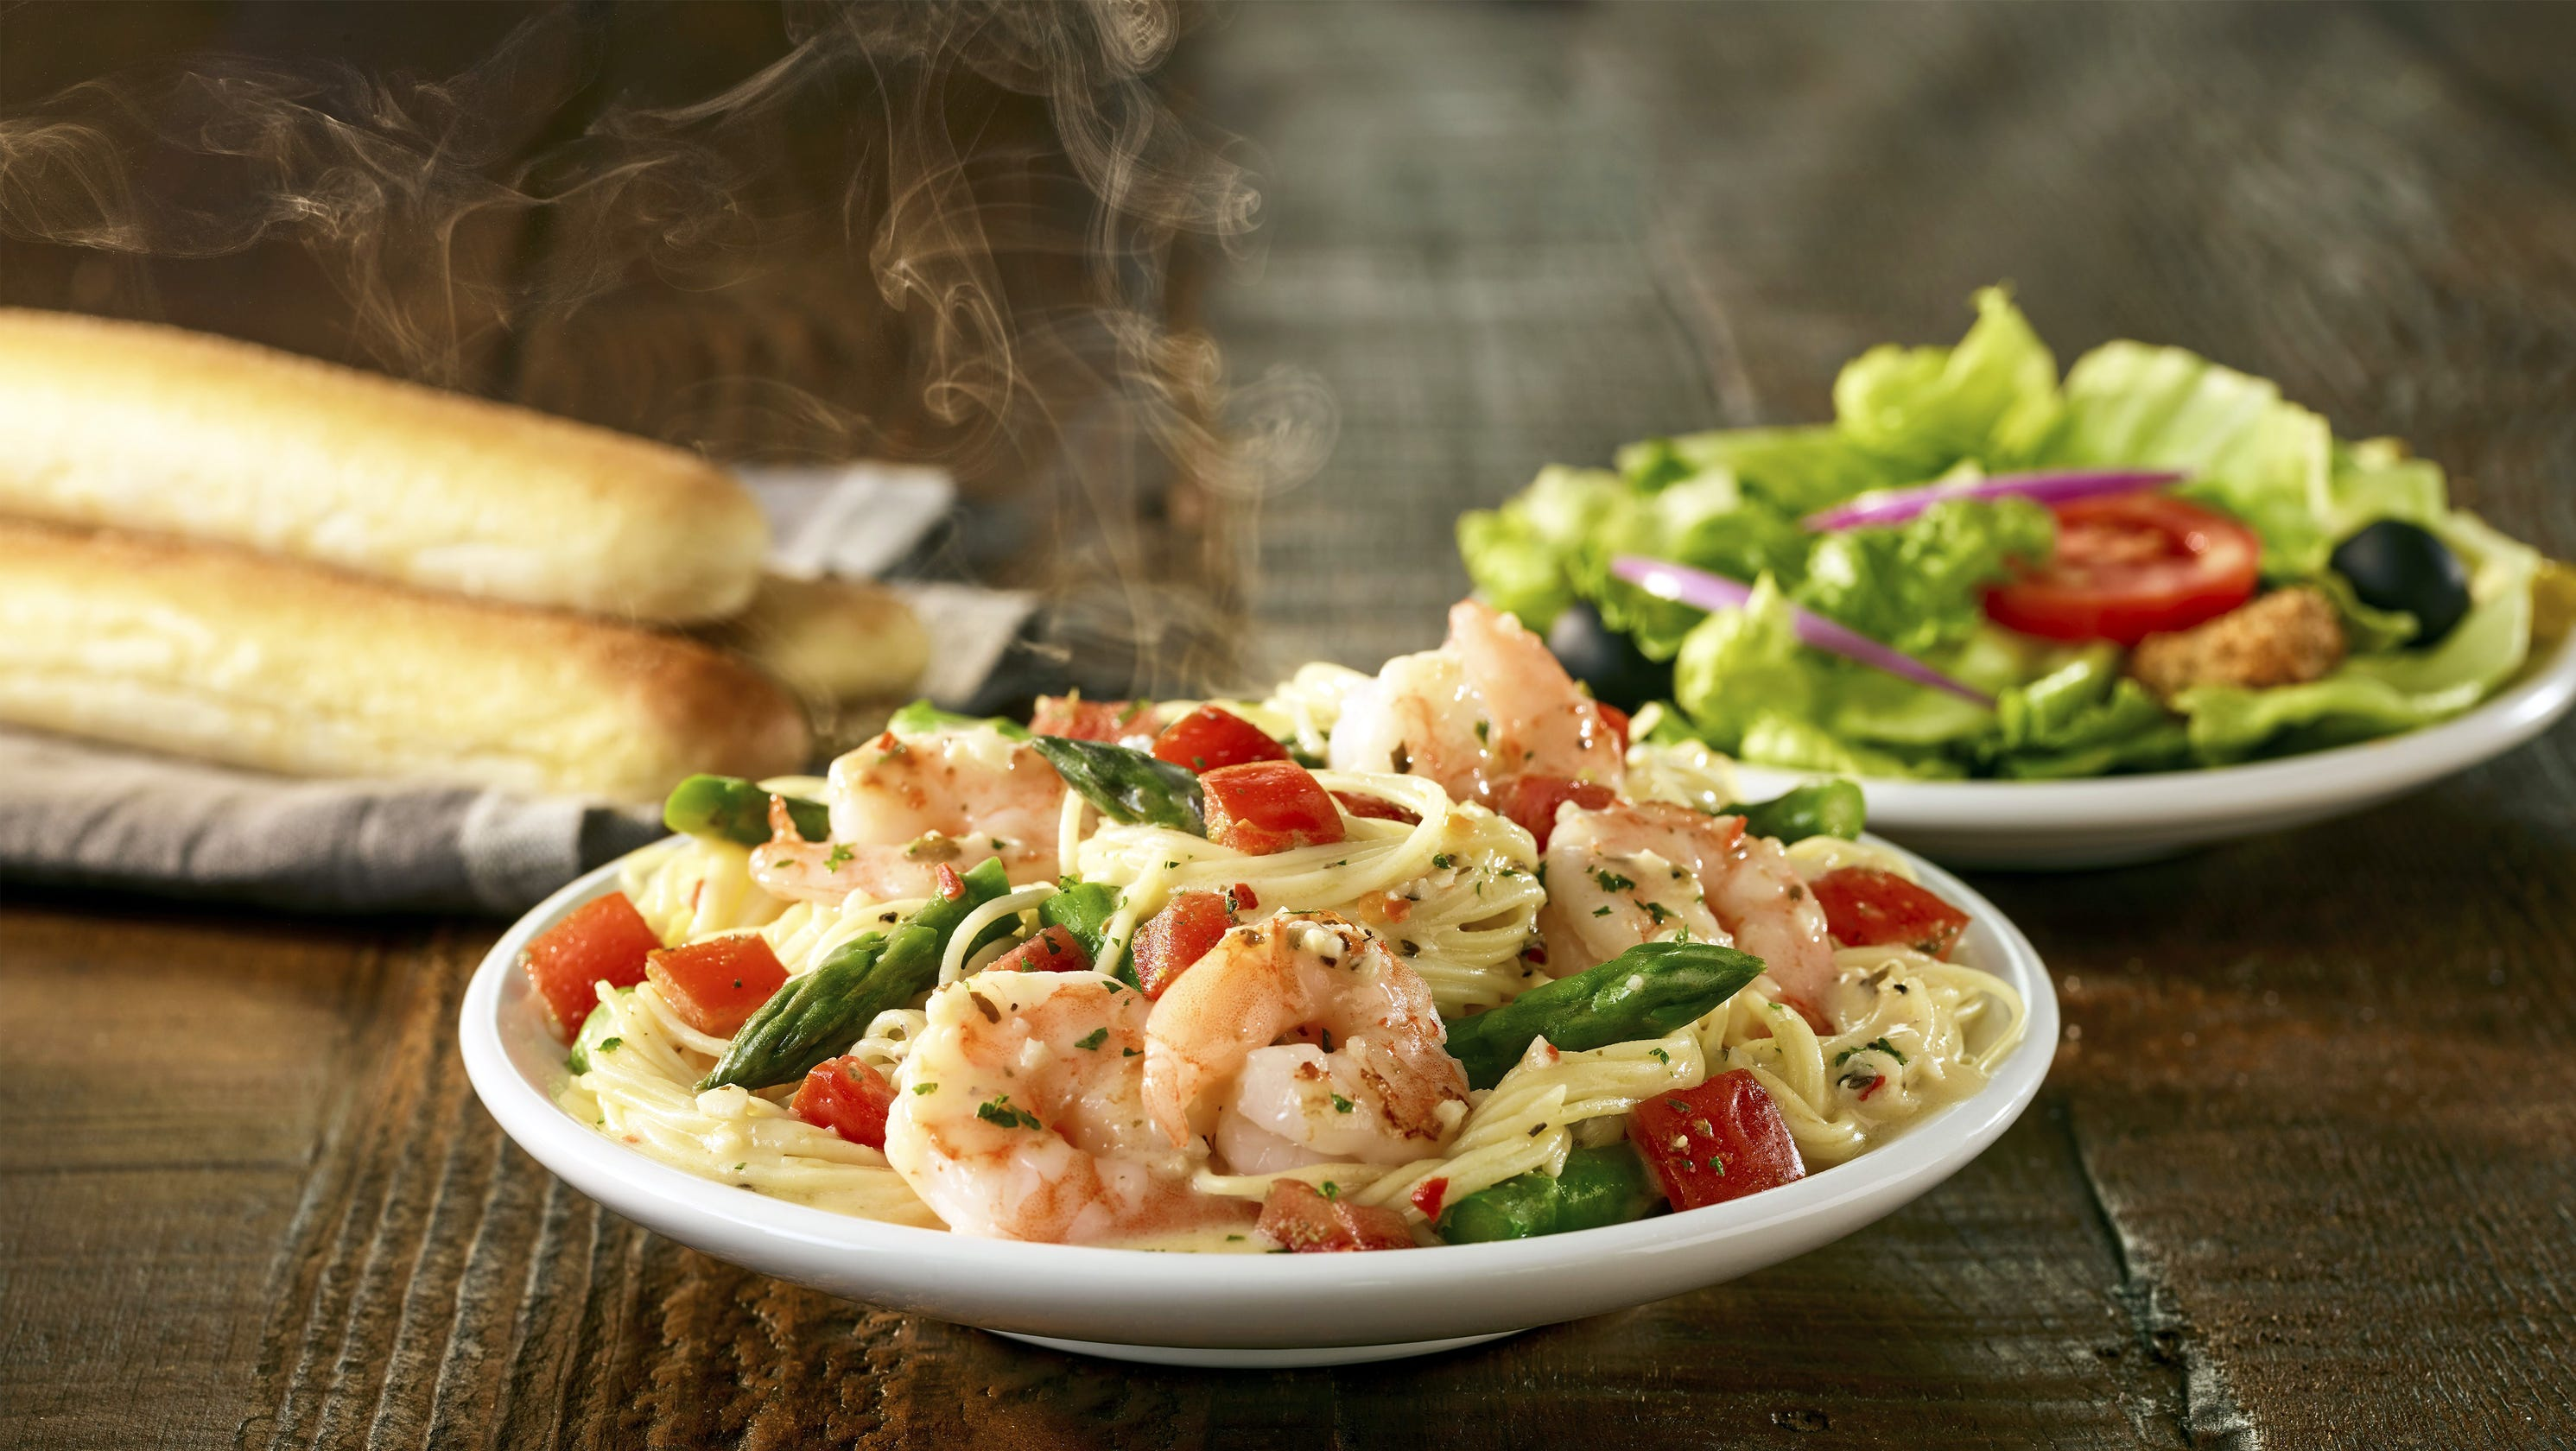 Fyi food latest dining specials and deals in the naples area - What are the specials at olive garden ...